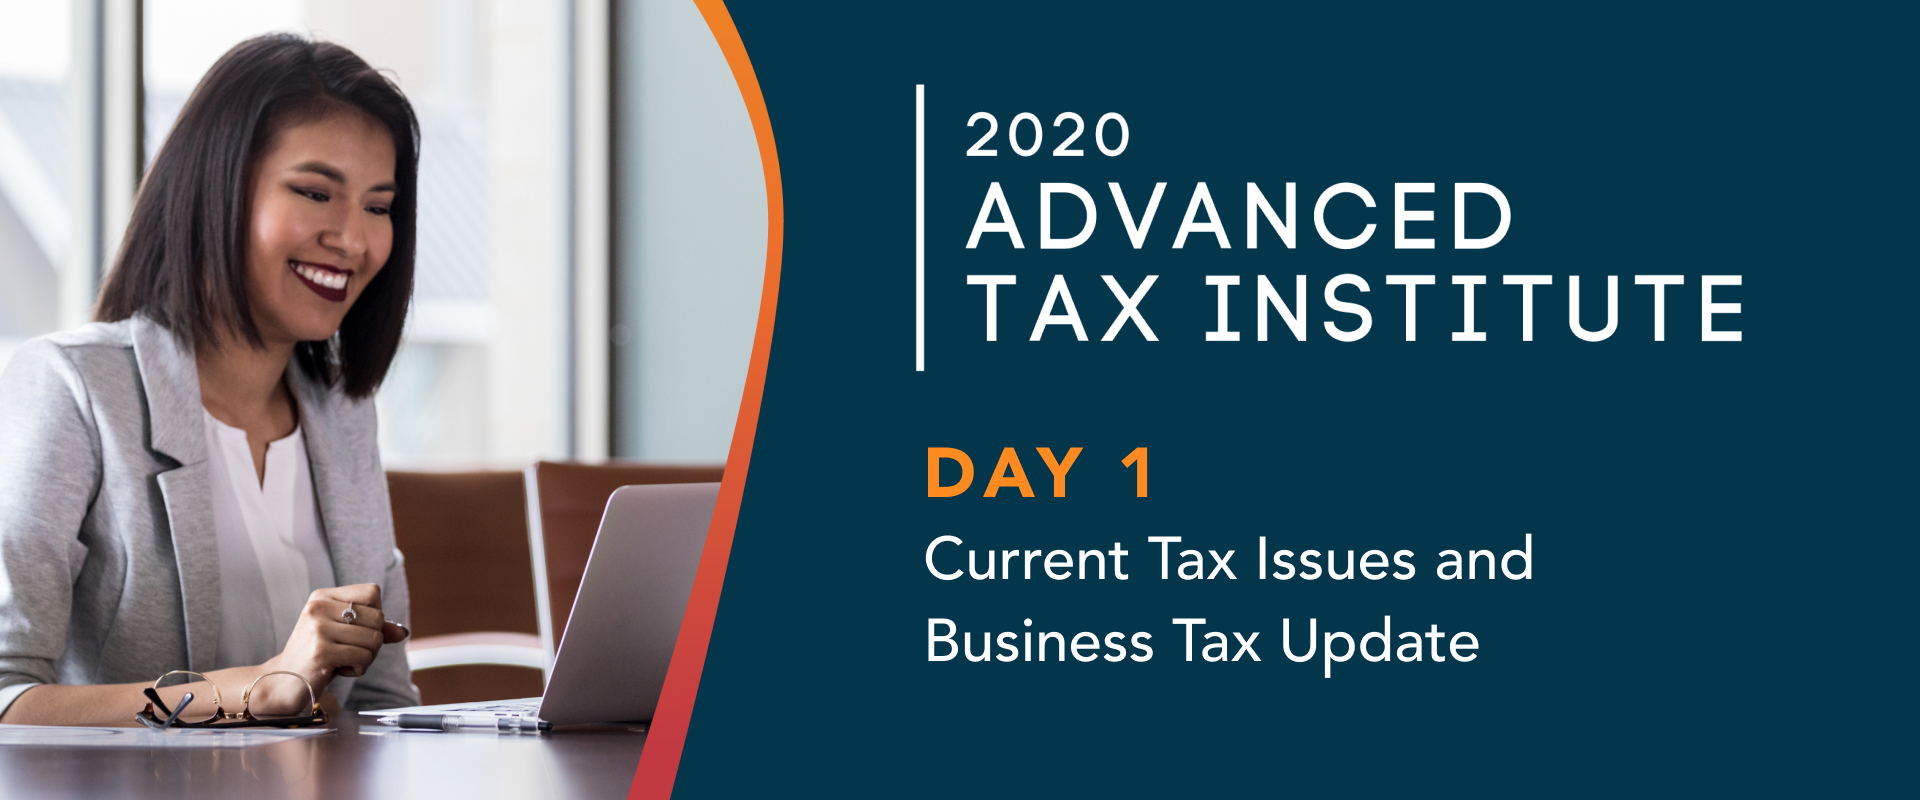 ADVANCED TAX INSTITUTE DAY 1 – Current Tax Issues and Business Tax Update